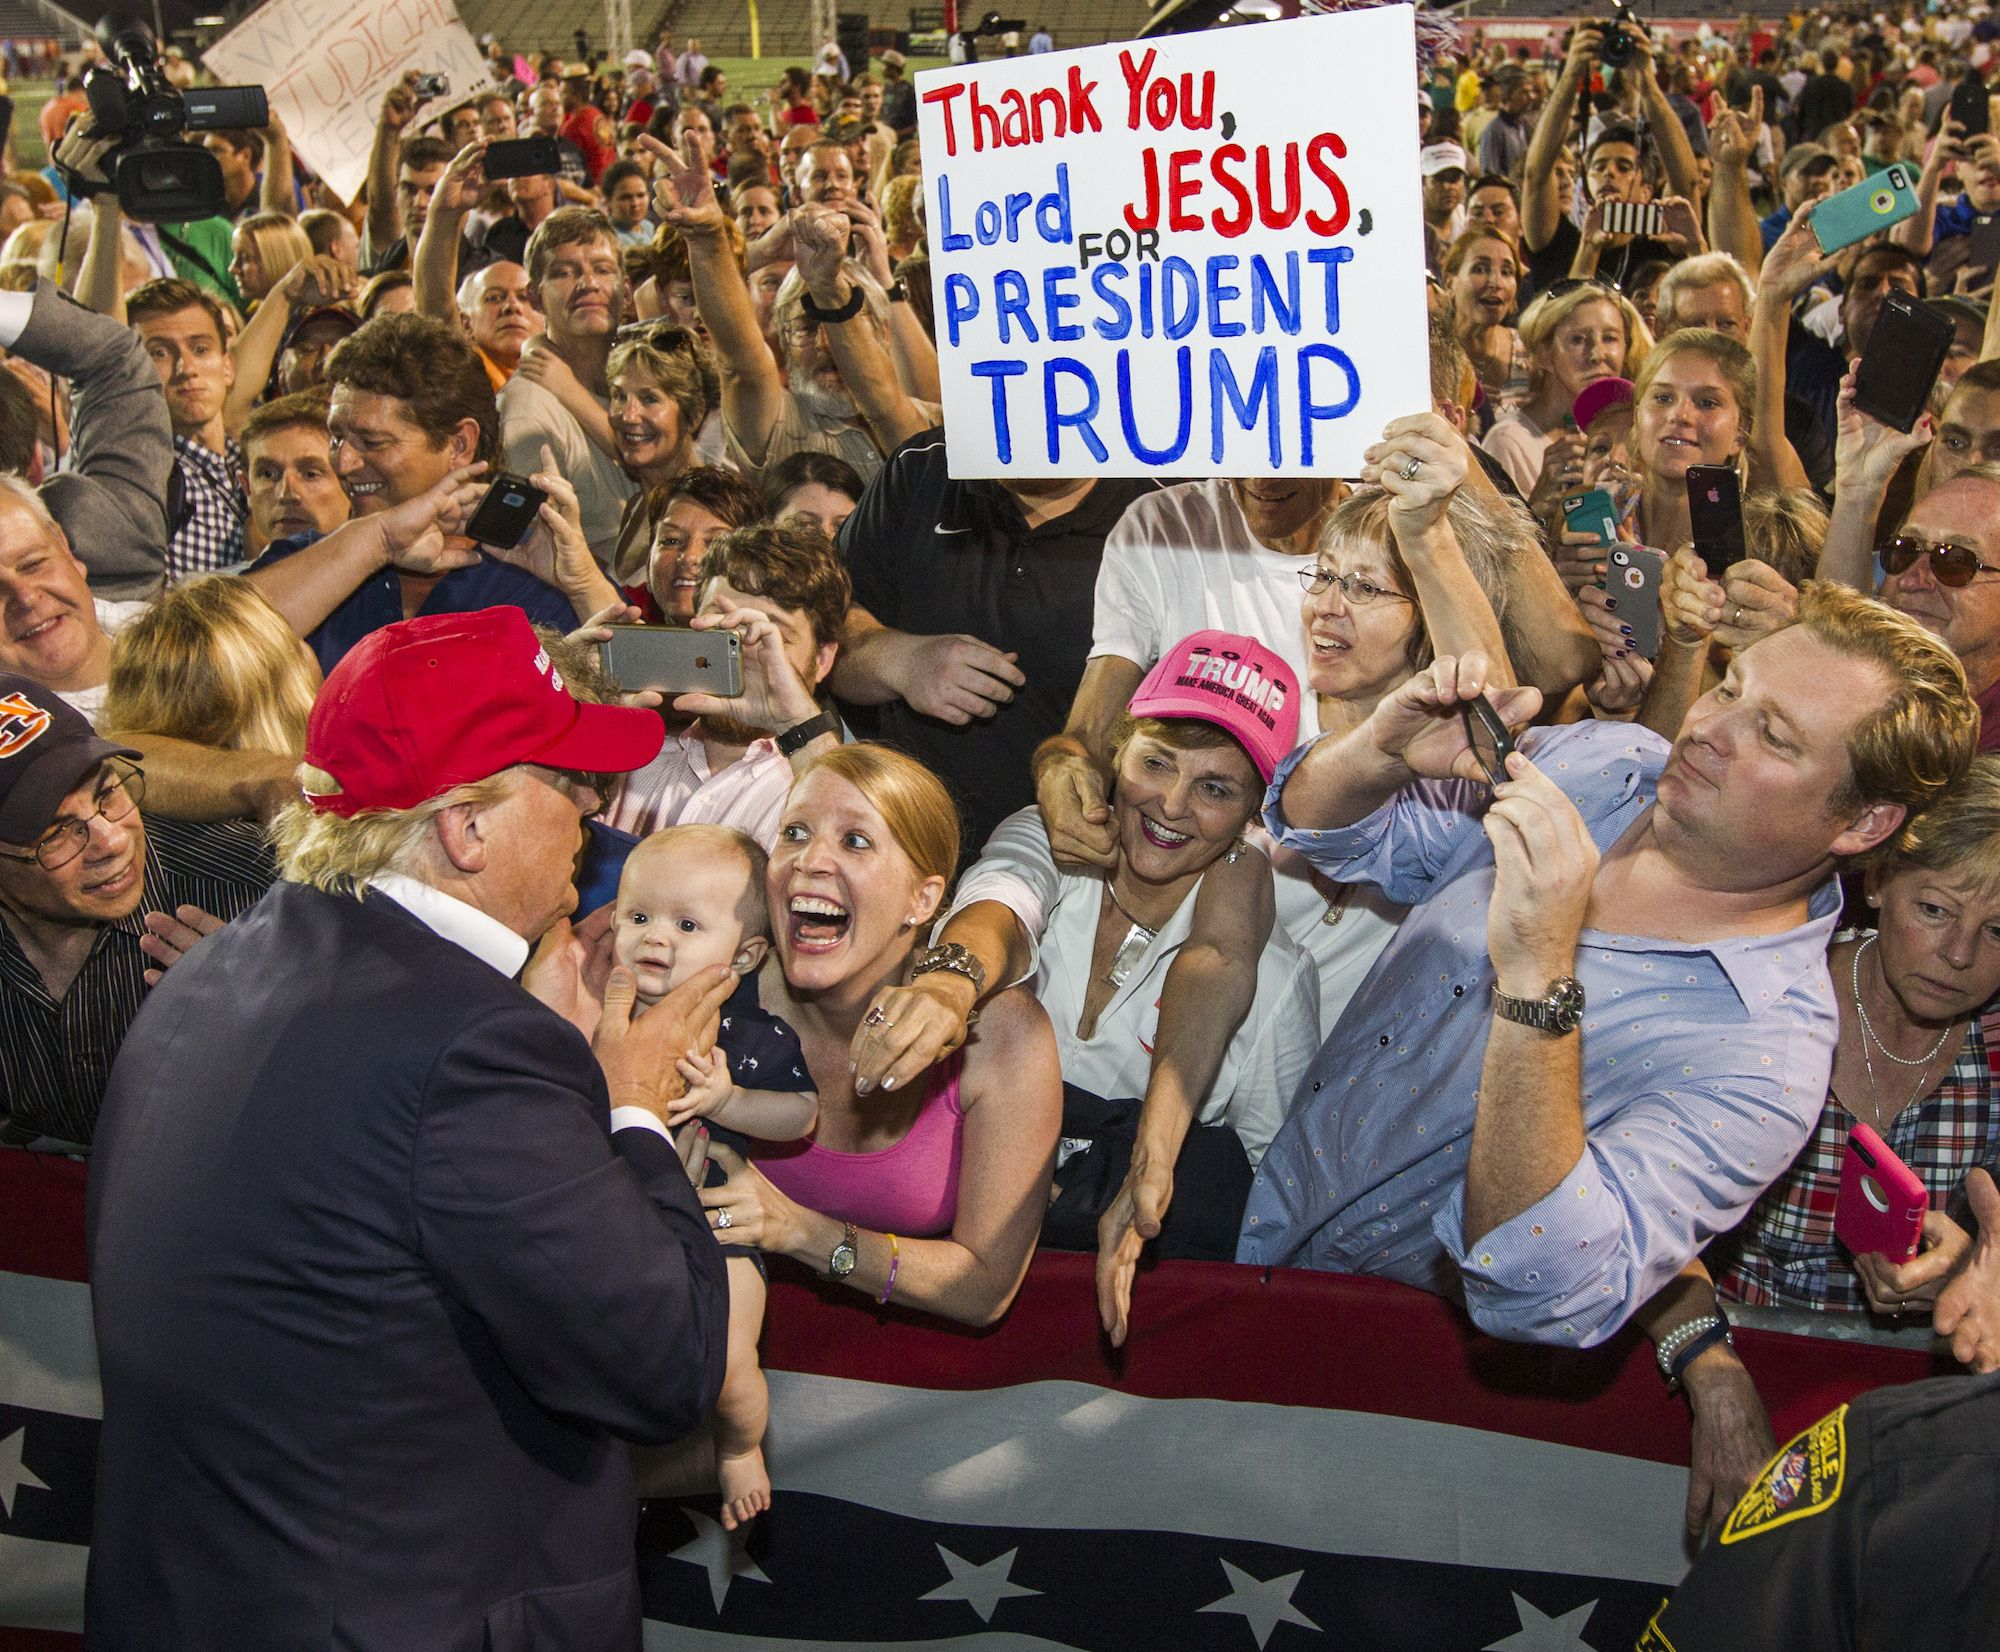 South Carolina signals Republicans have handcuffed themselves to Donald Trump, American president.